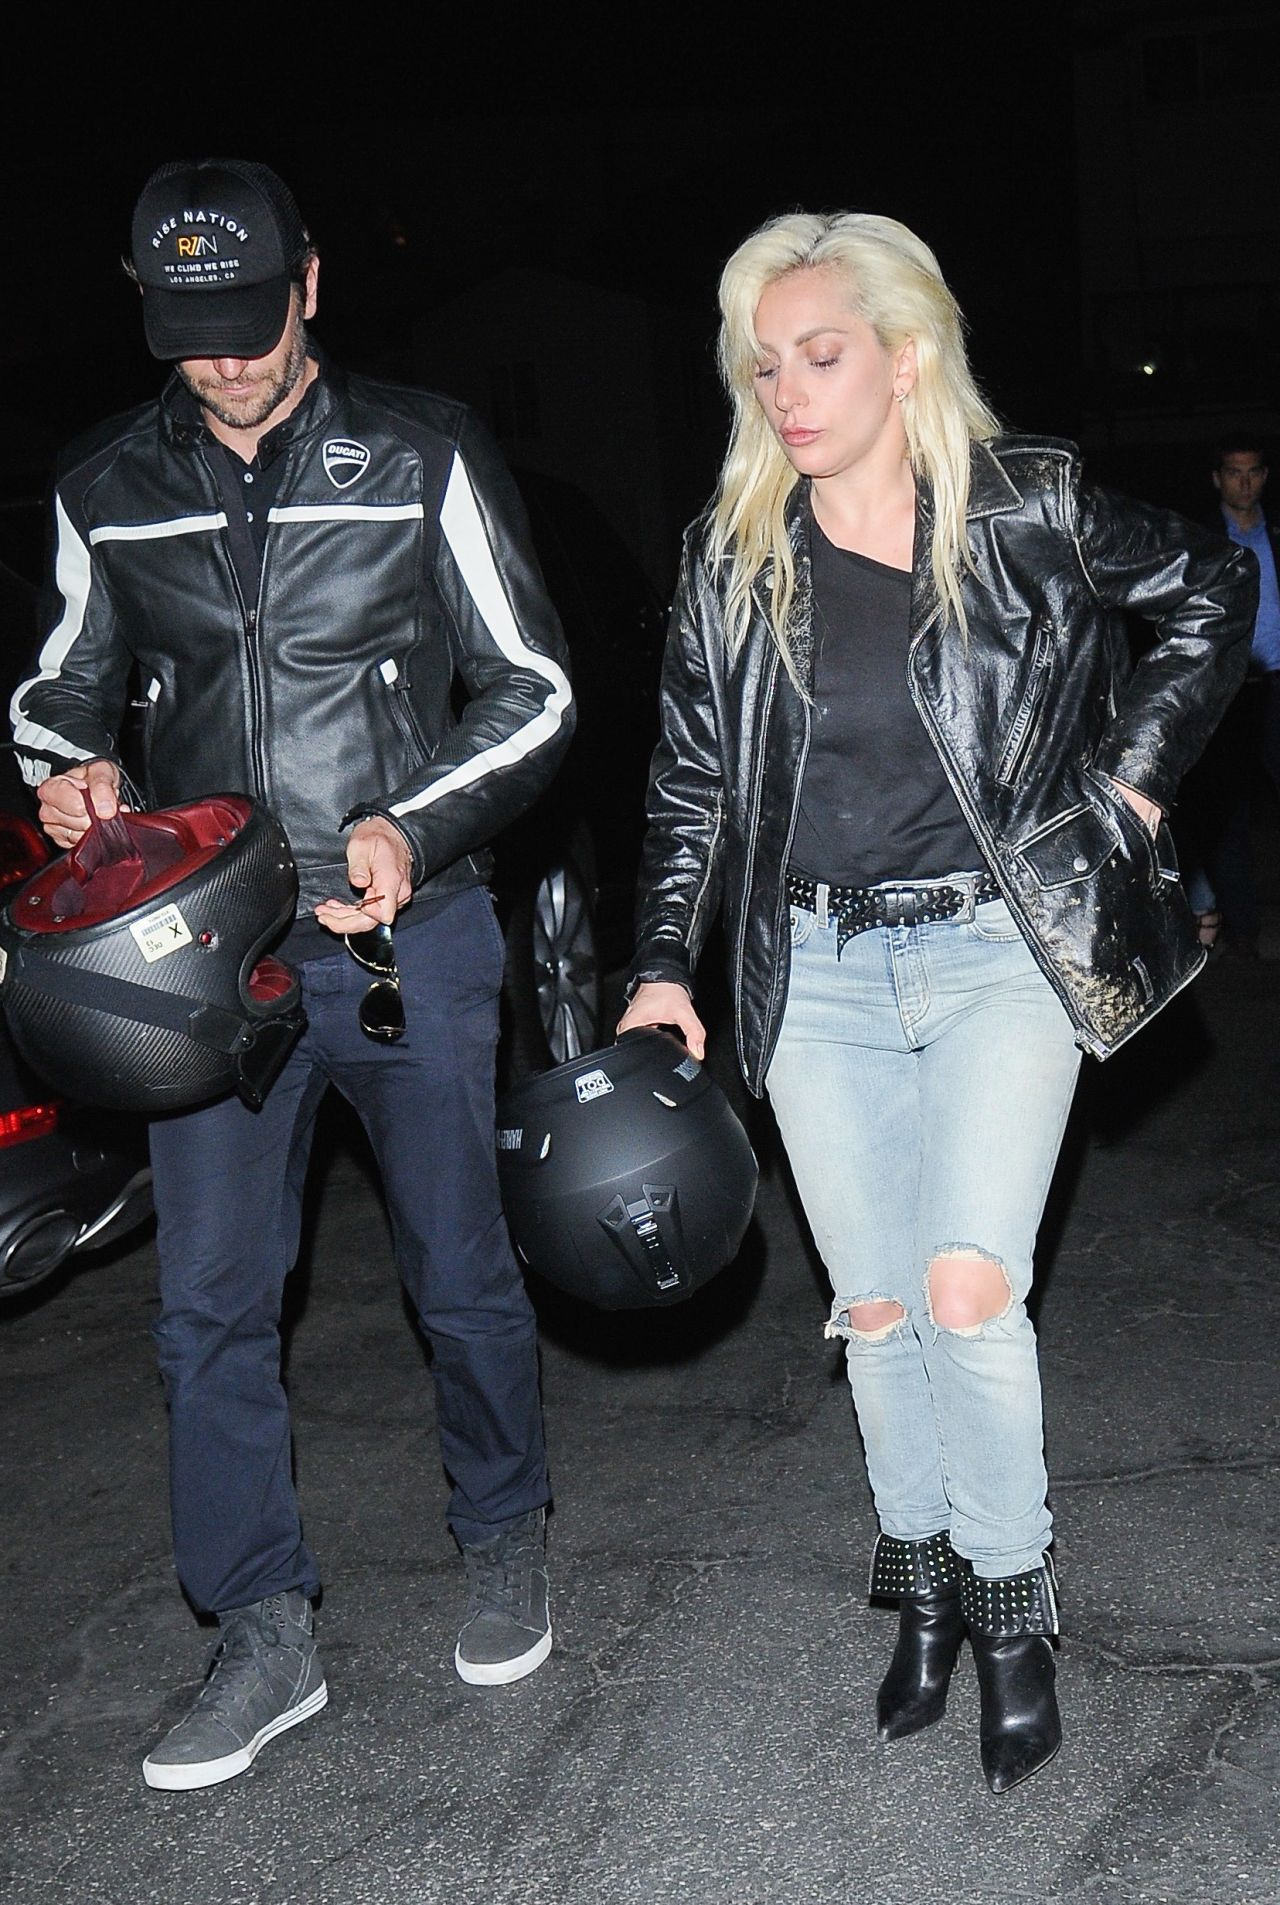 Lady Gaga Arrives With Bradley Cooper On His Ducati